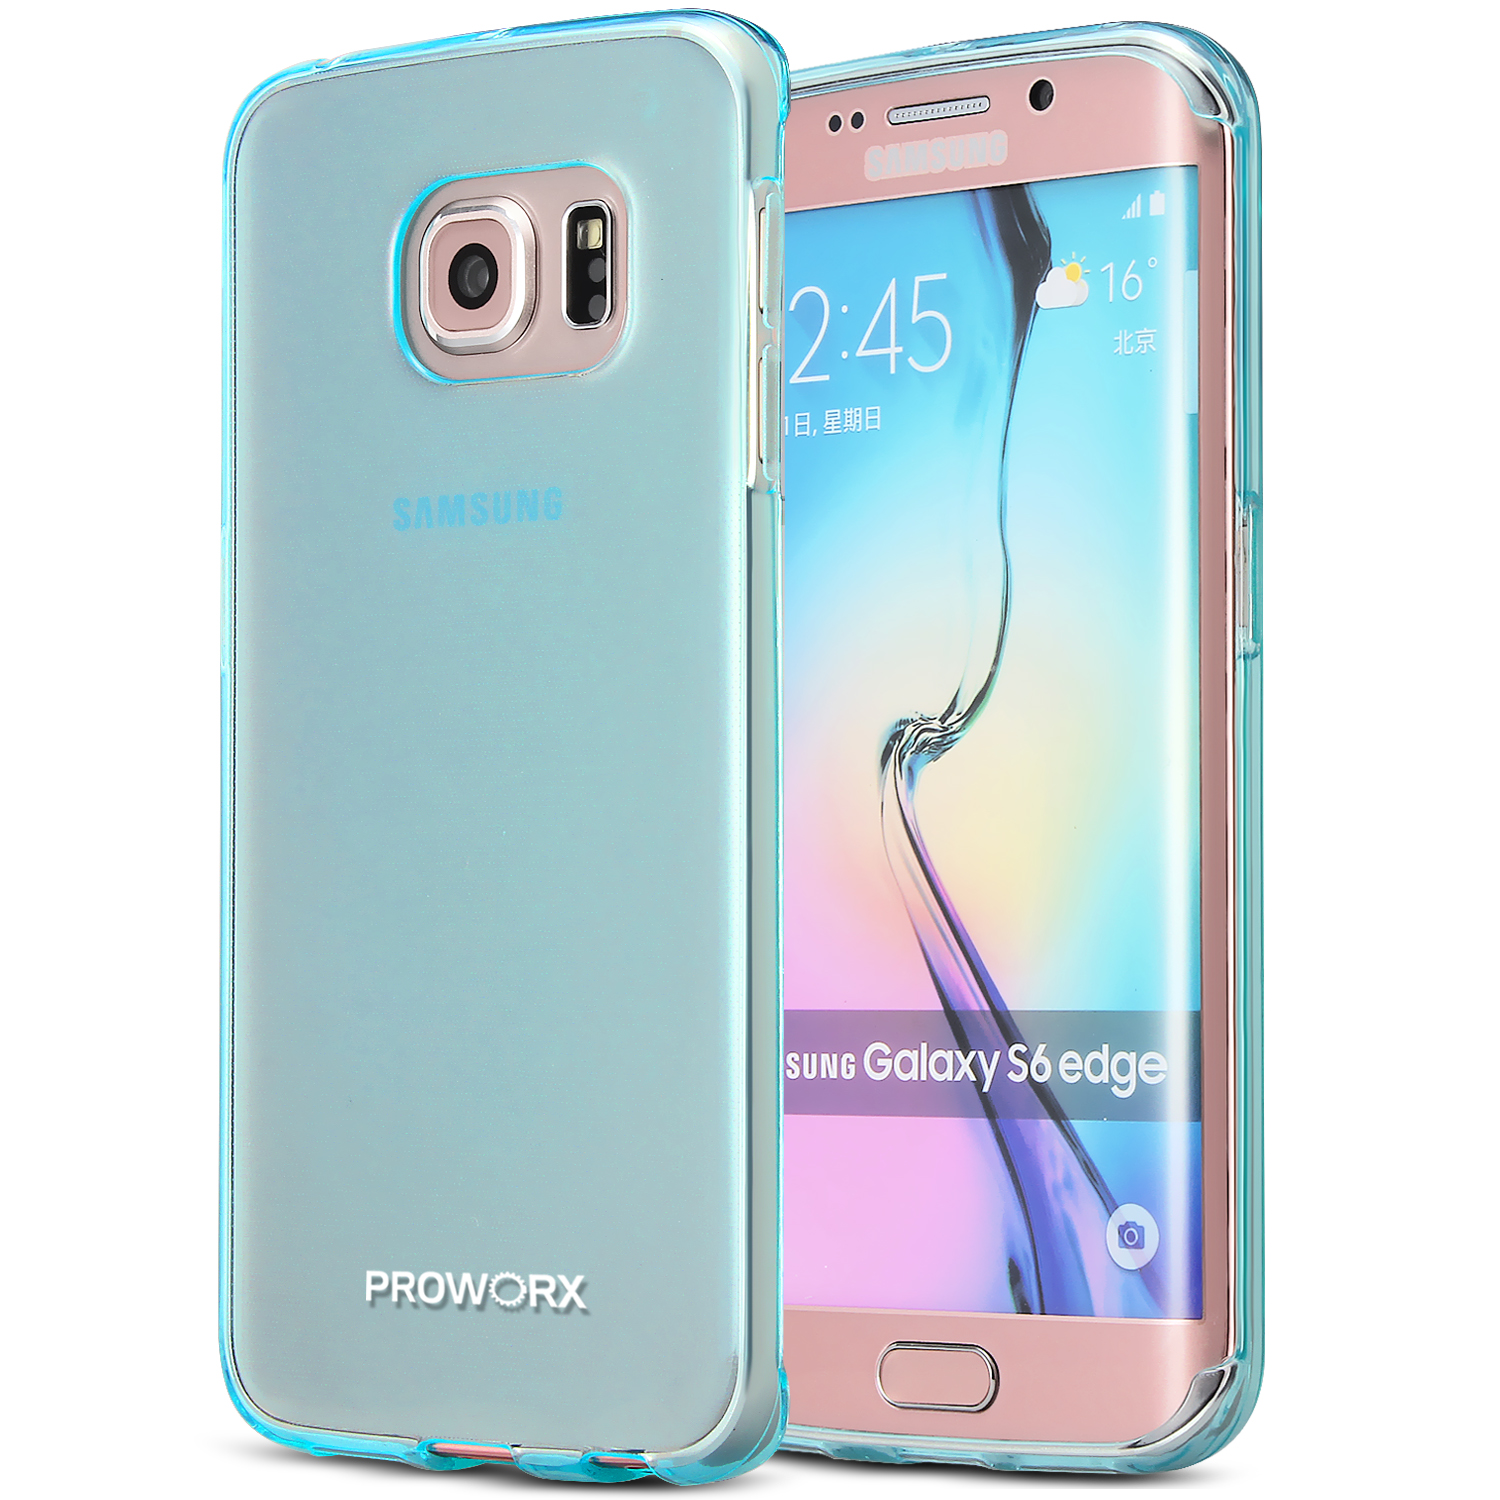 Samsung Galaxy S6 Edge Plus + Mint Green ProWorx Ultra Slim Thin Scratch Resistant TPU Silicone Case Cover